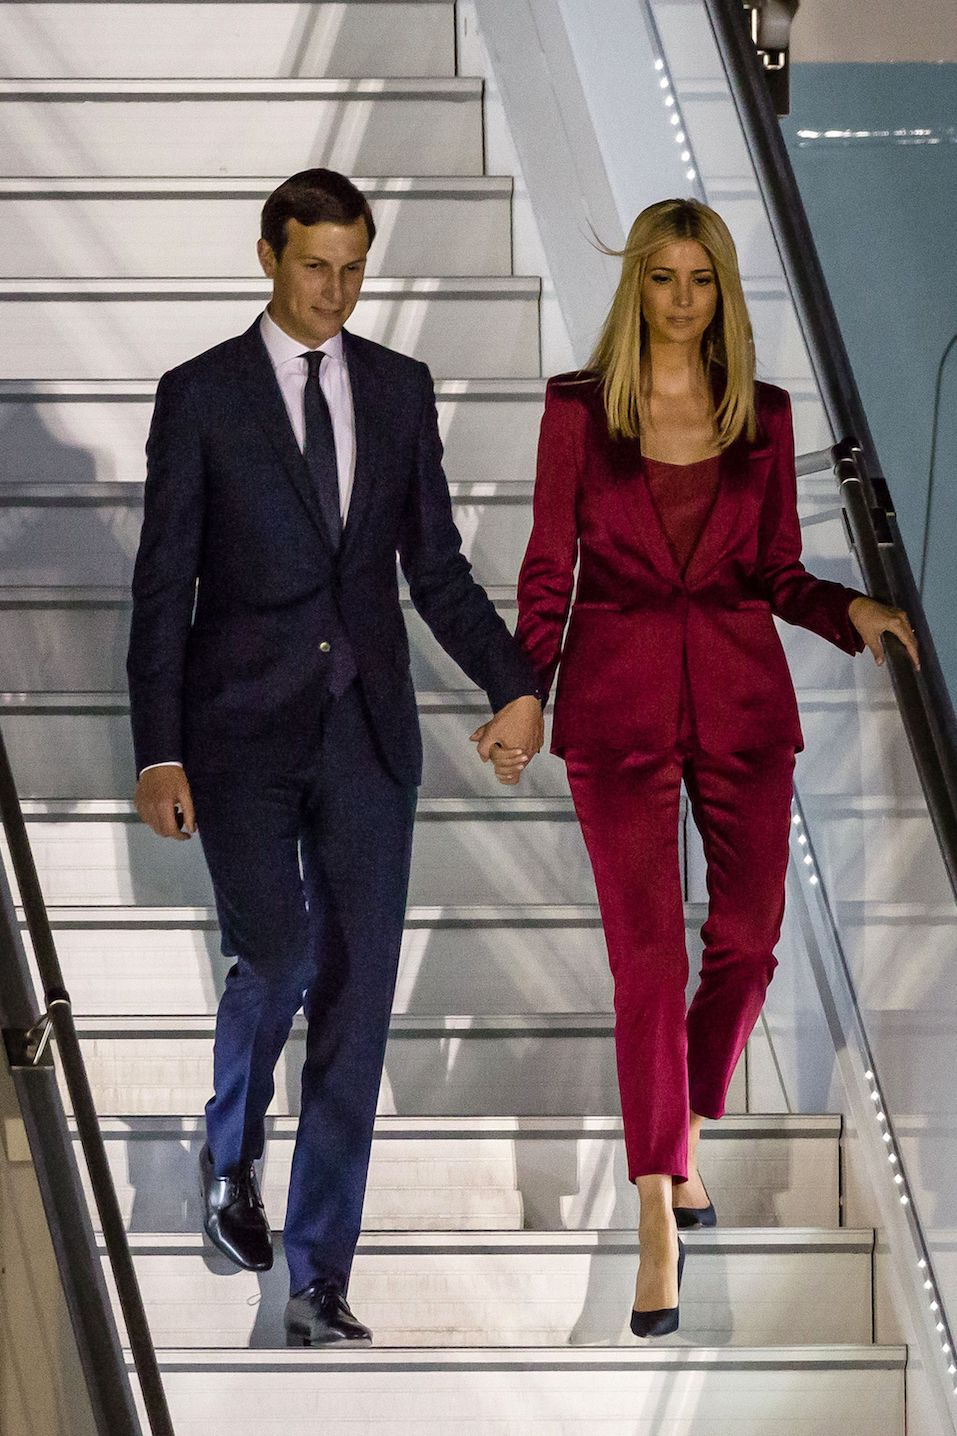 Ivanka Trump (R) and her husband Jared Kushner step off Air Force One upon arrival